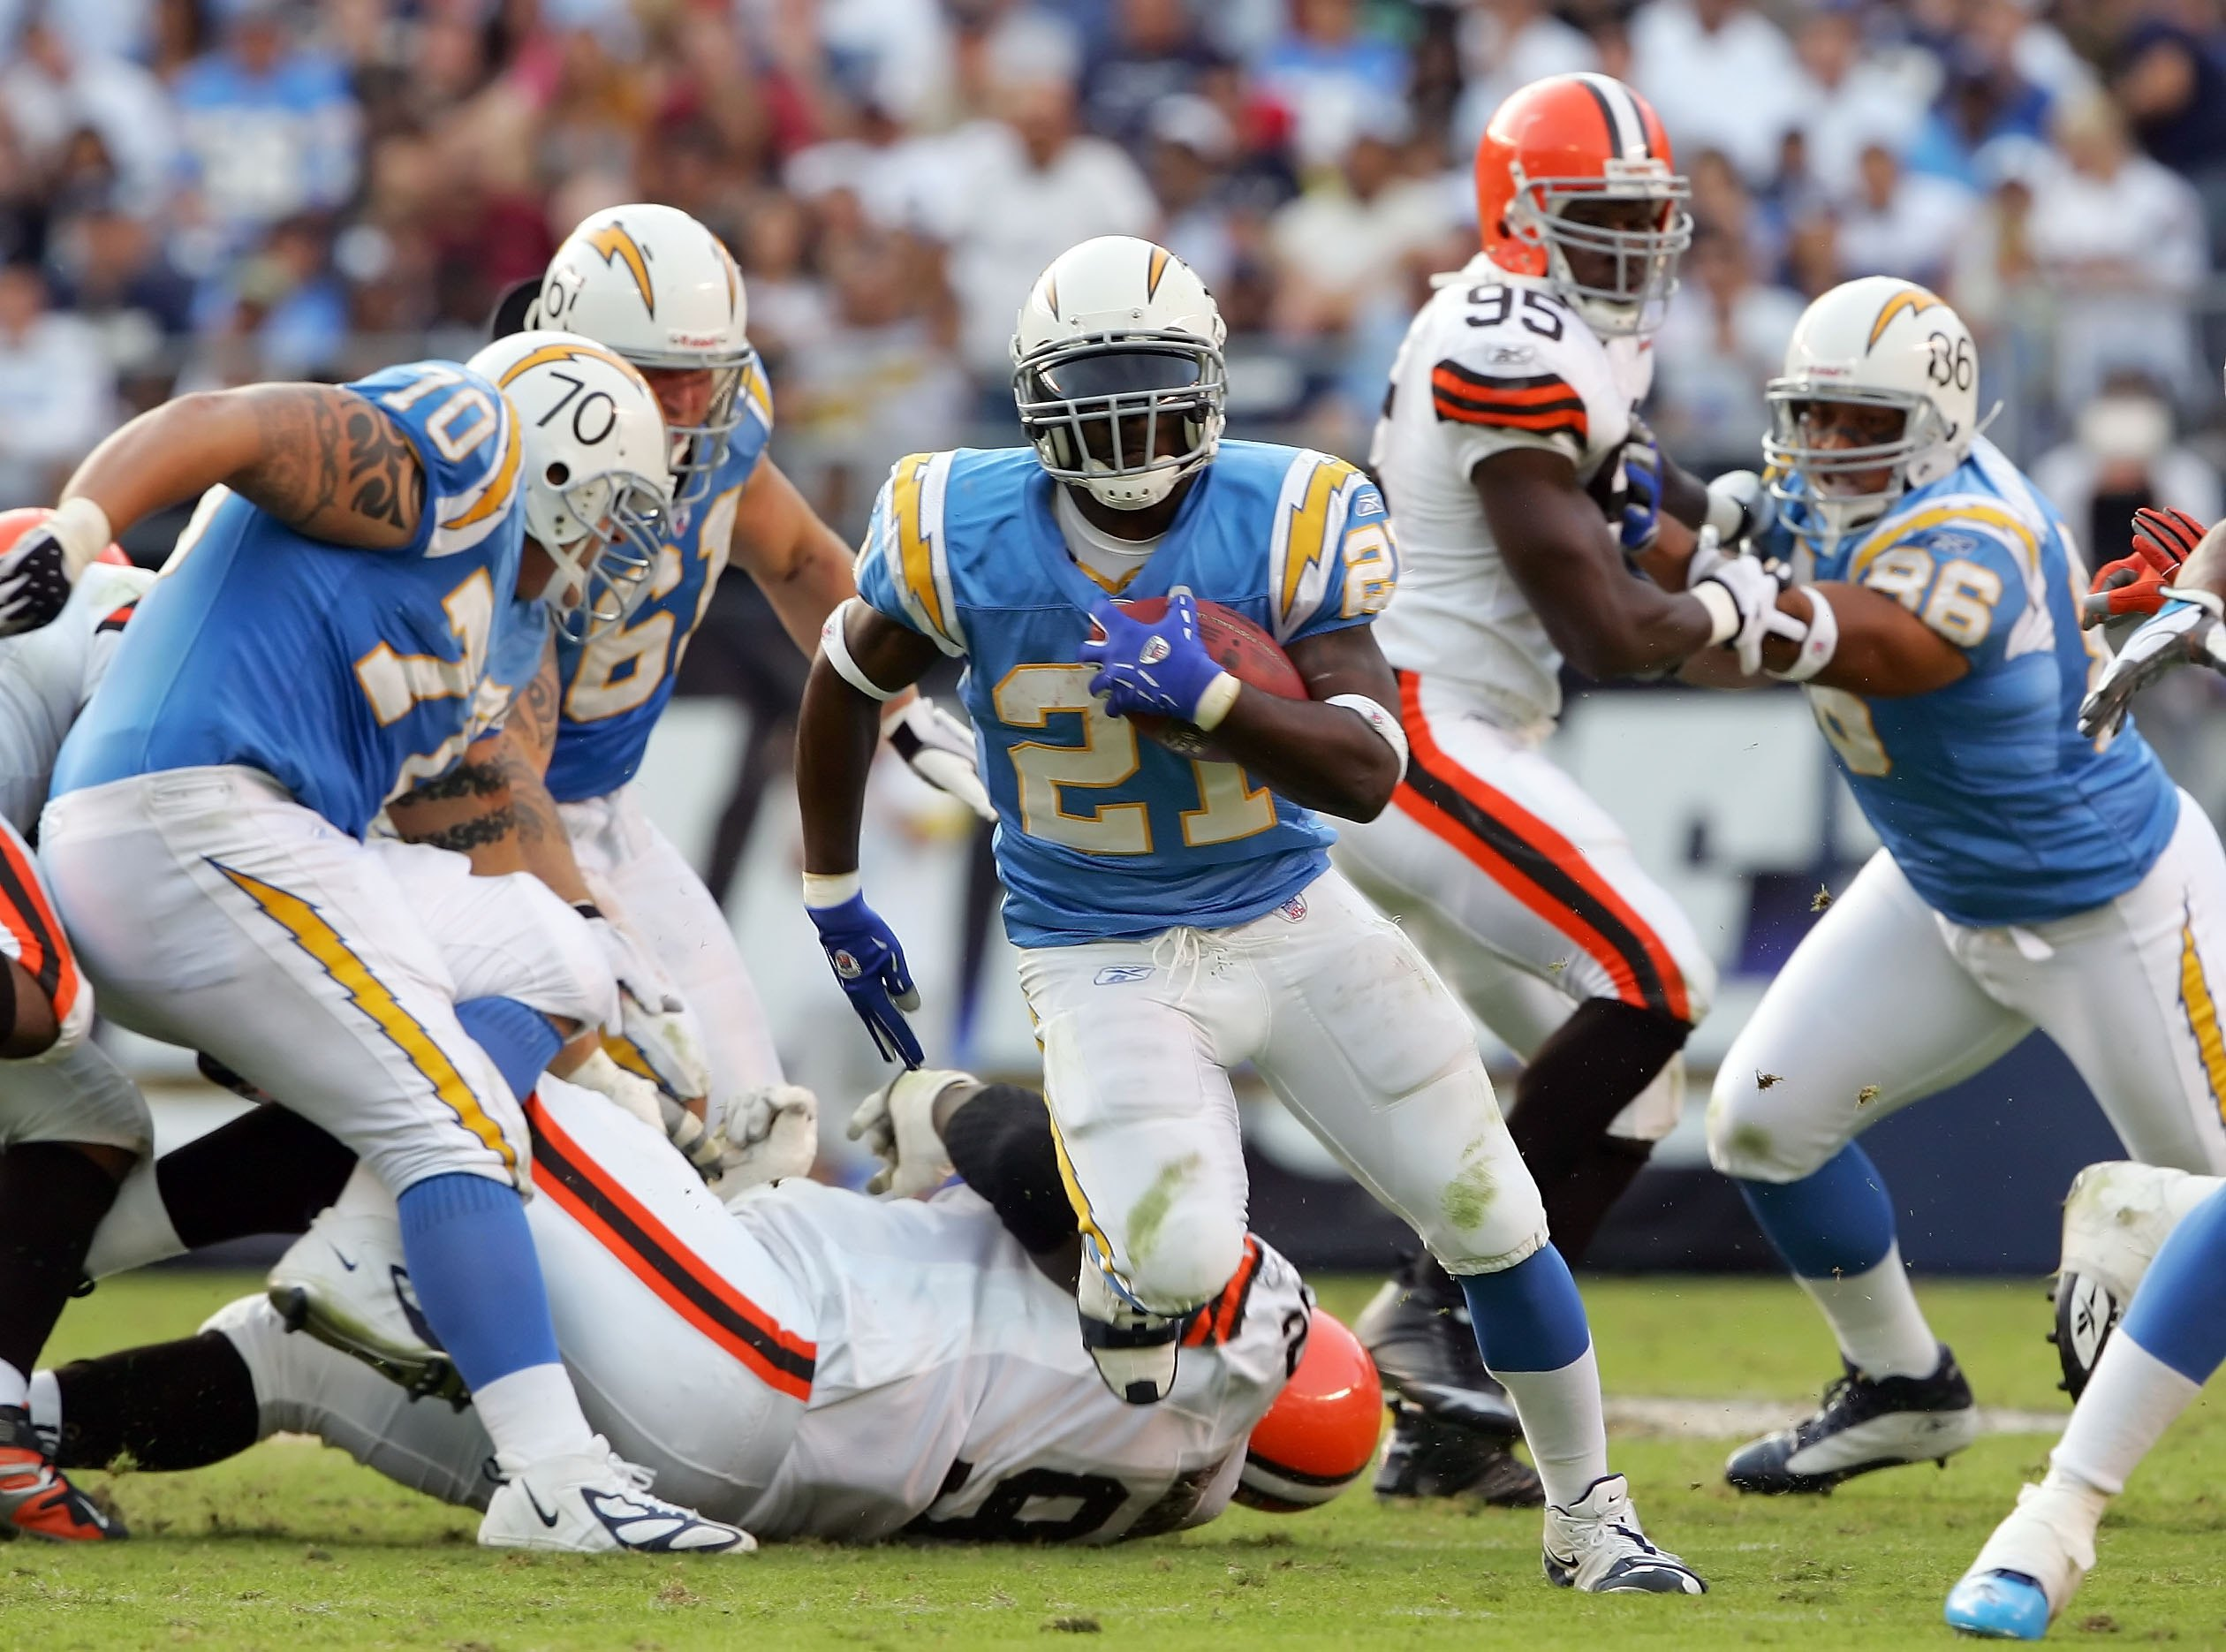 SAN DIEGO - NOVEMBER 5: LaDanian Tomlinson #21 of the San Diego Chargers carrries the ball 41 yards for a touchdown in the second half against the Cleveland Browns on November 5, 2006 at Qualcomm Stadium in San Diego, California. (Photo by Lisa Blumenfeld